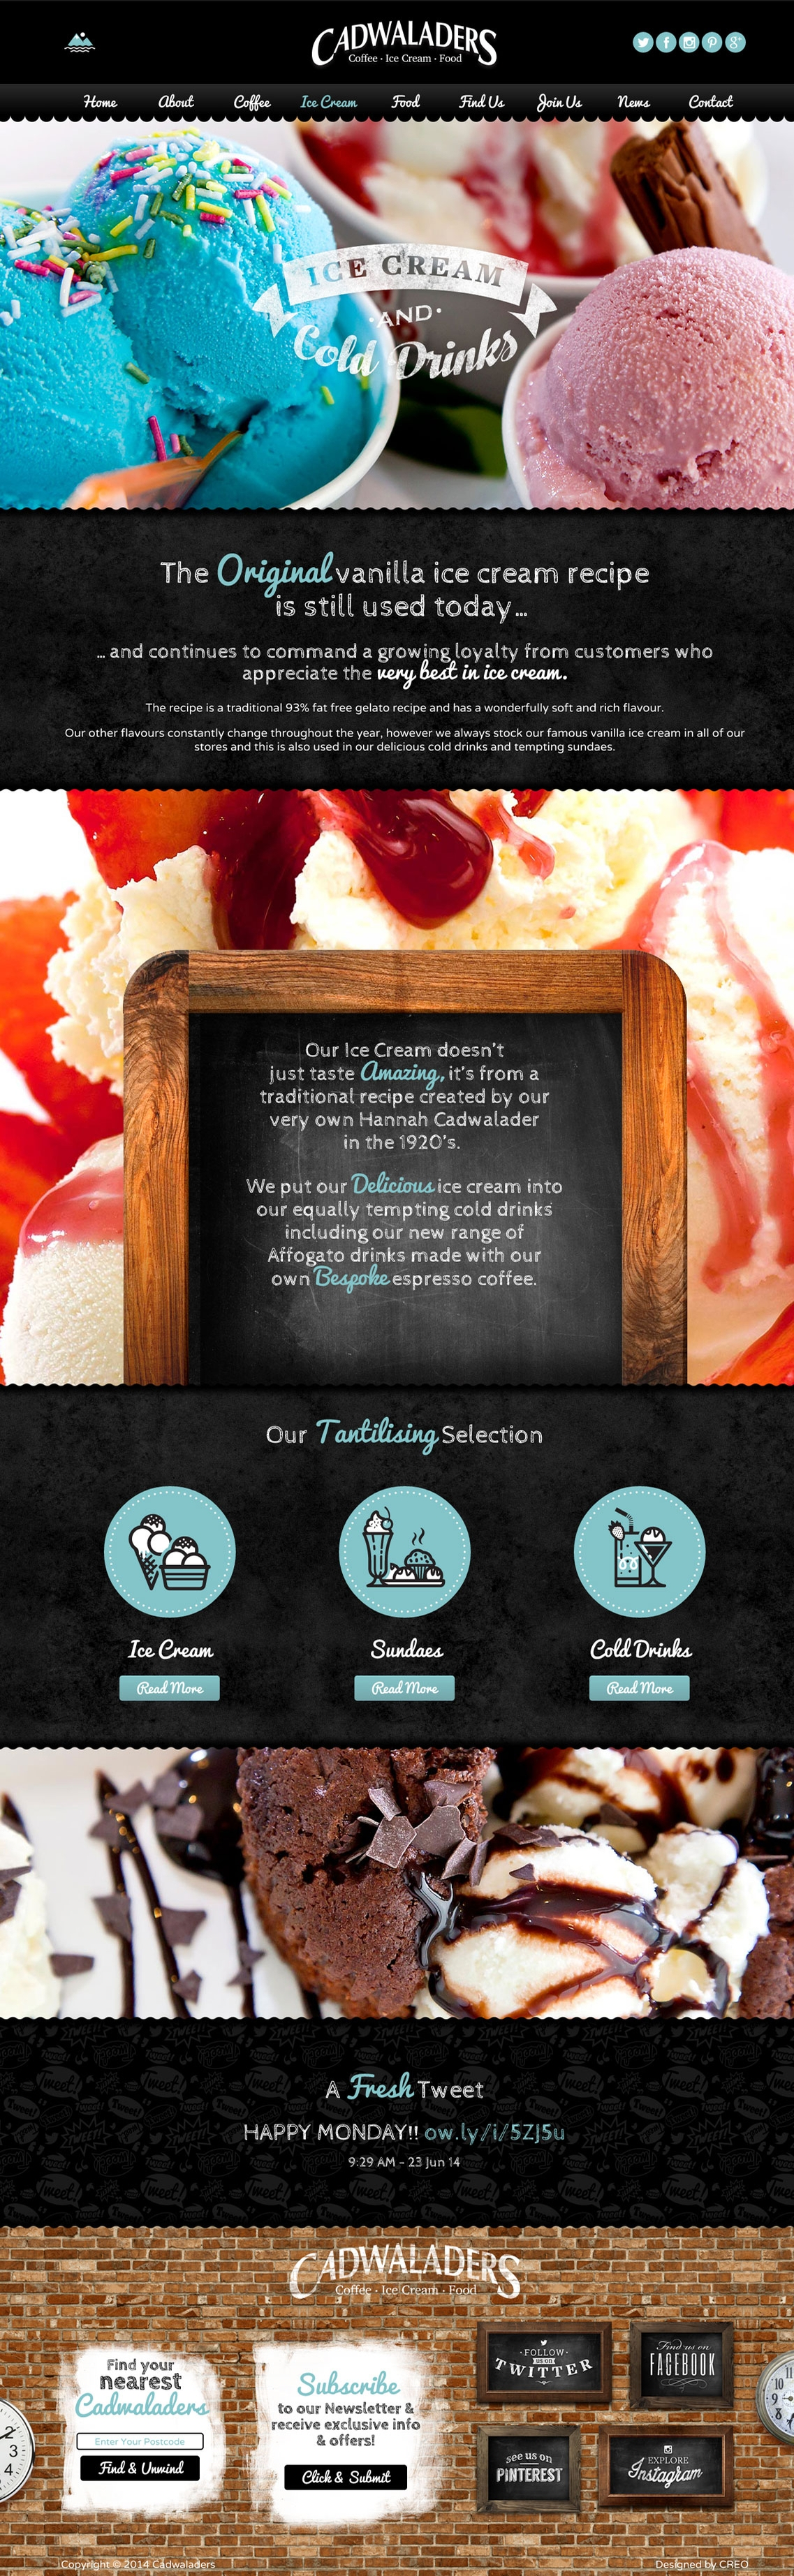 Web Design Cadwaladers